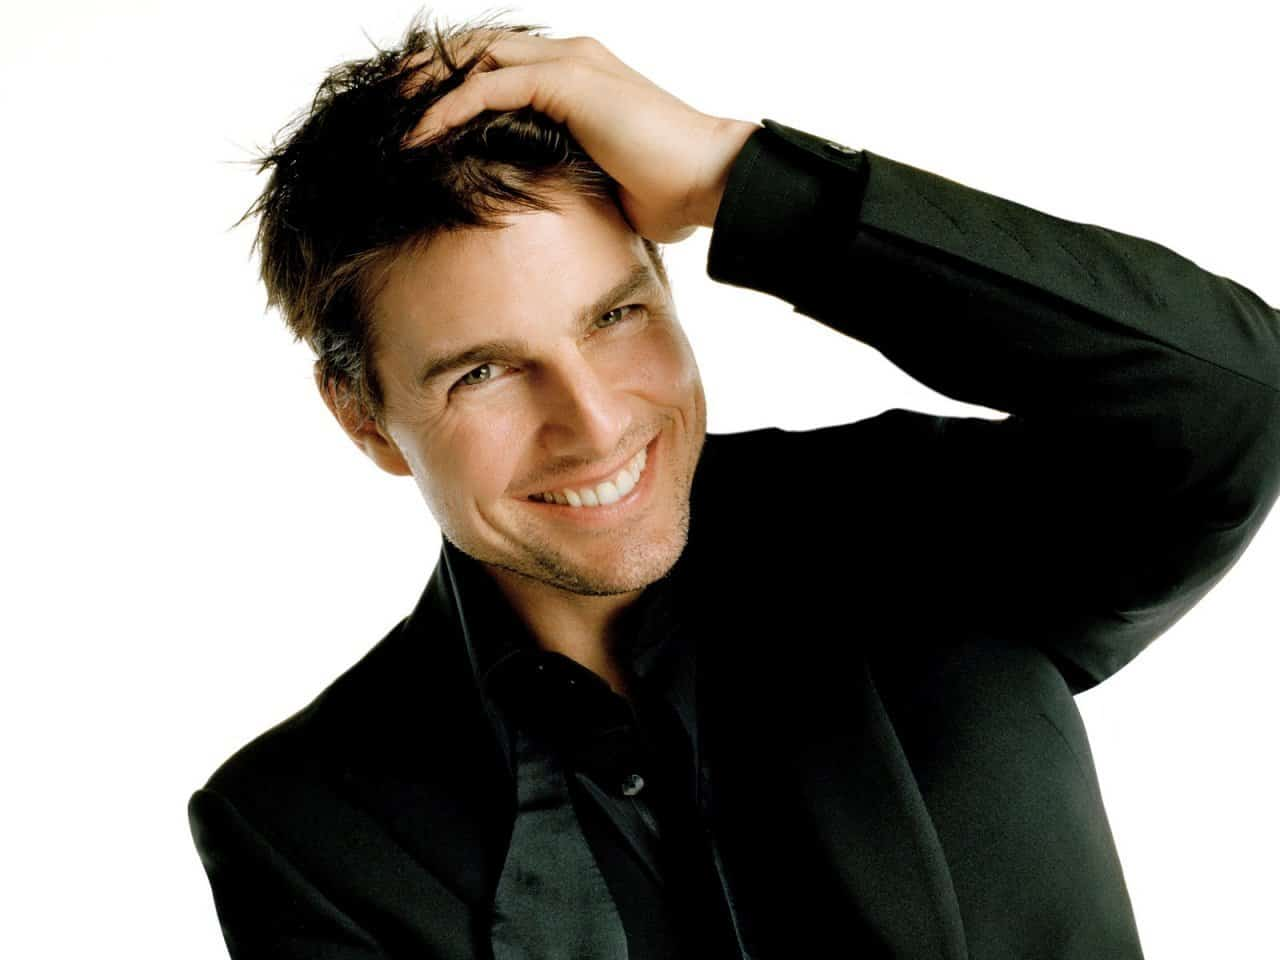 Celebrity of the Week: Tom Cruise